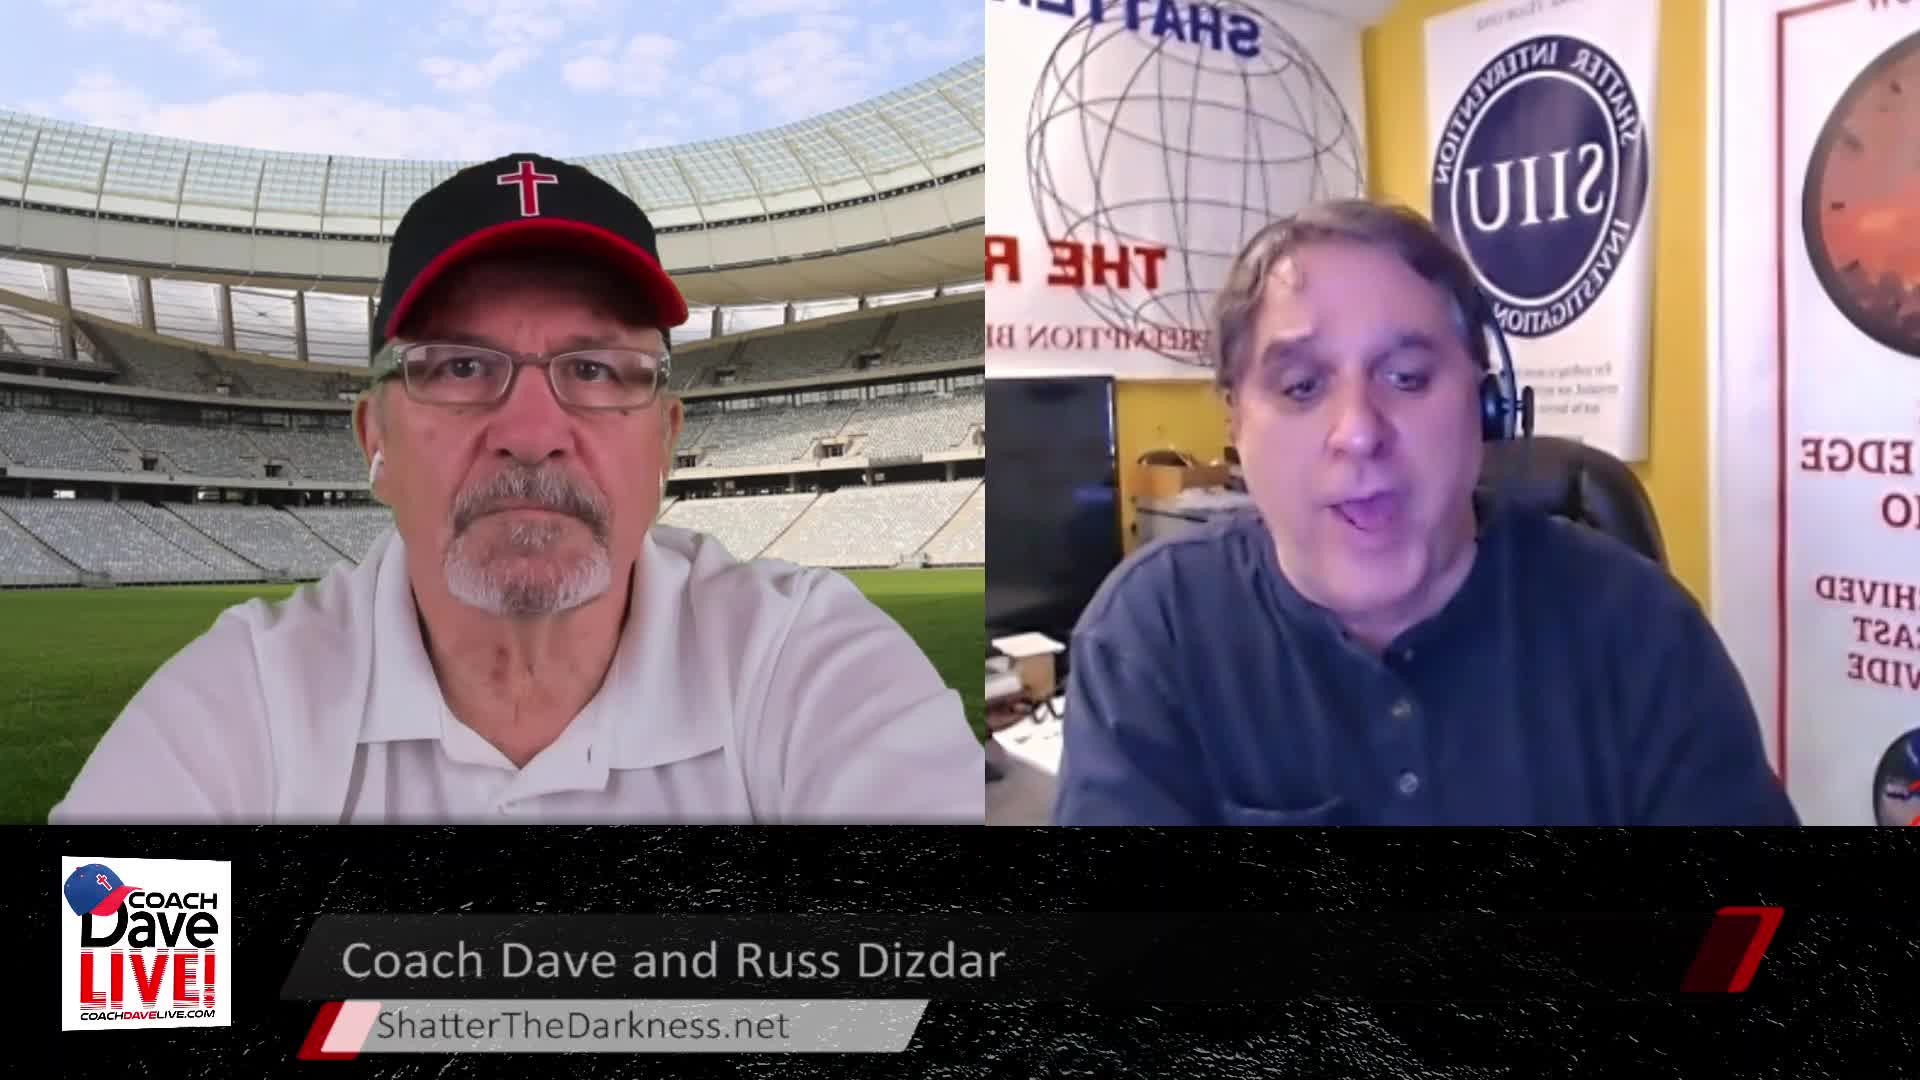 Coach Dave LIVE | 4-8-2021 | FIGHTING DEMONS WITH GUEST RUSS DIZDAR - AUDIO ONLY